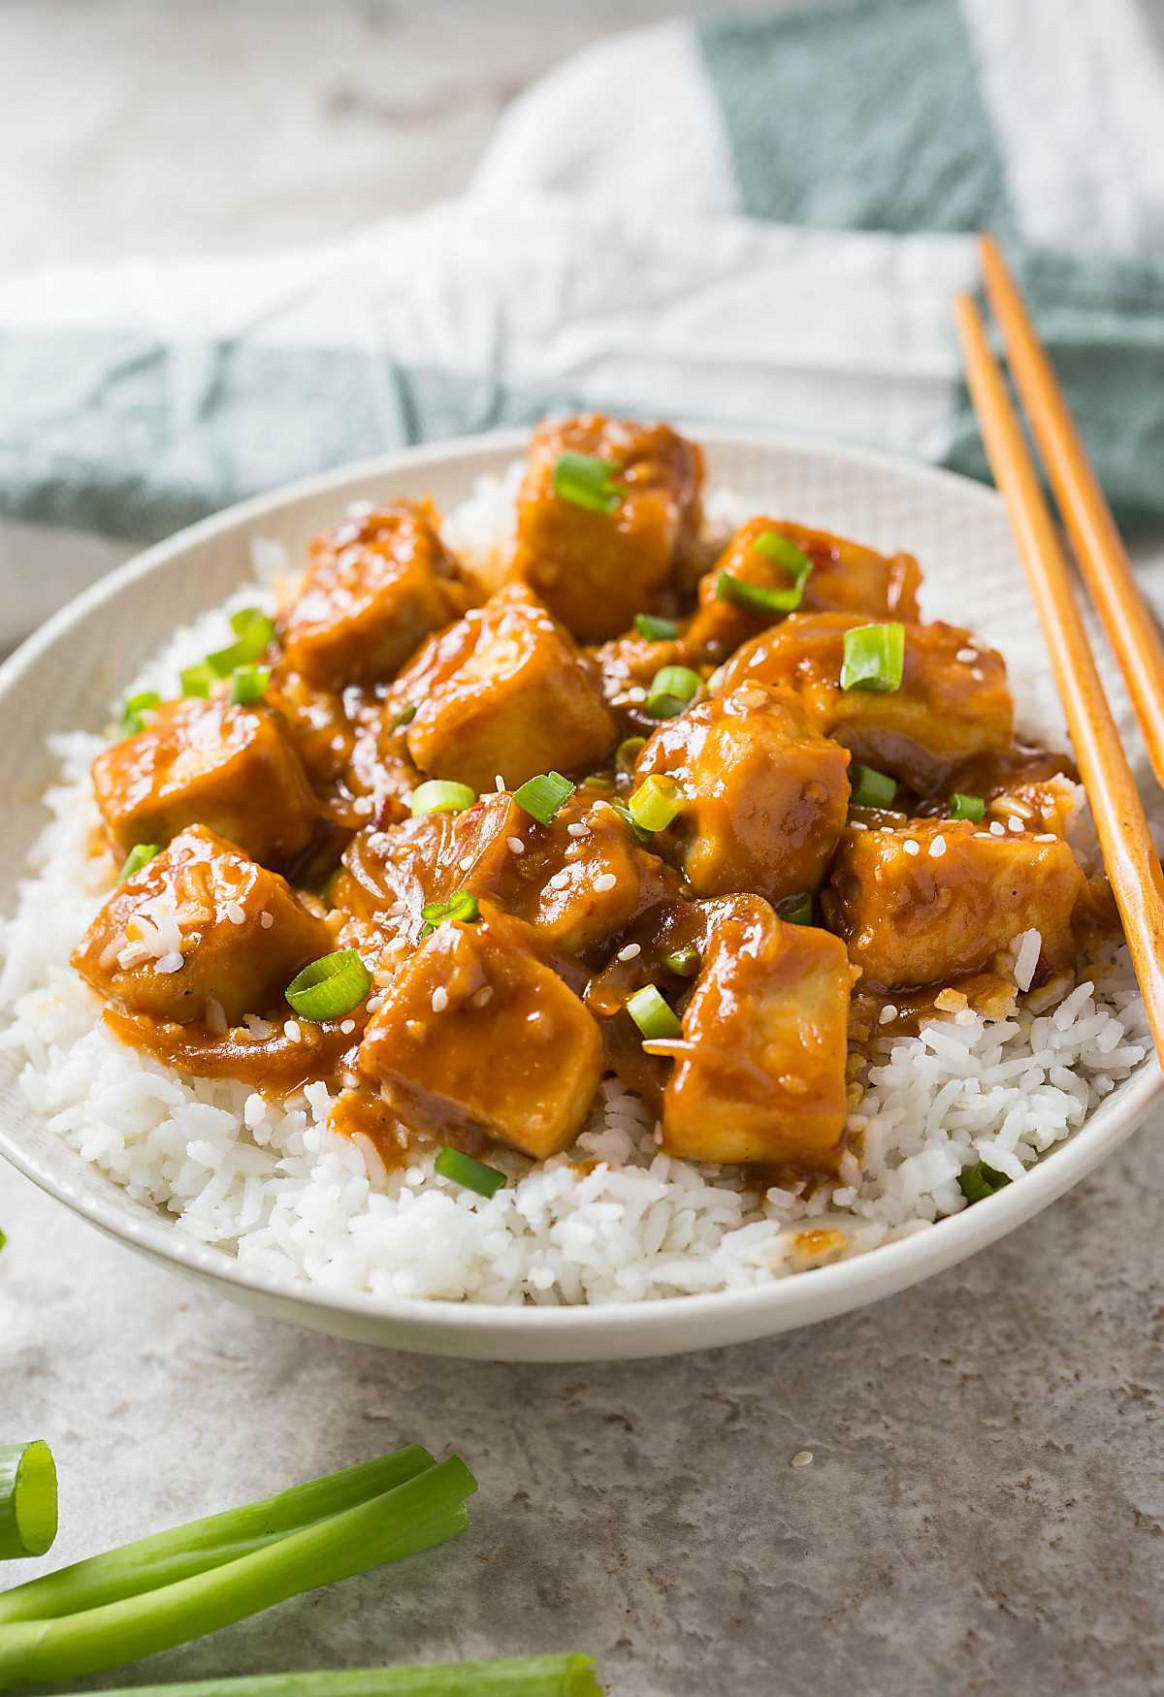 12 Min Healthy Asian Chili Garlic Tofu Stir Fry - Healthy Recipes Quick And Easy